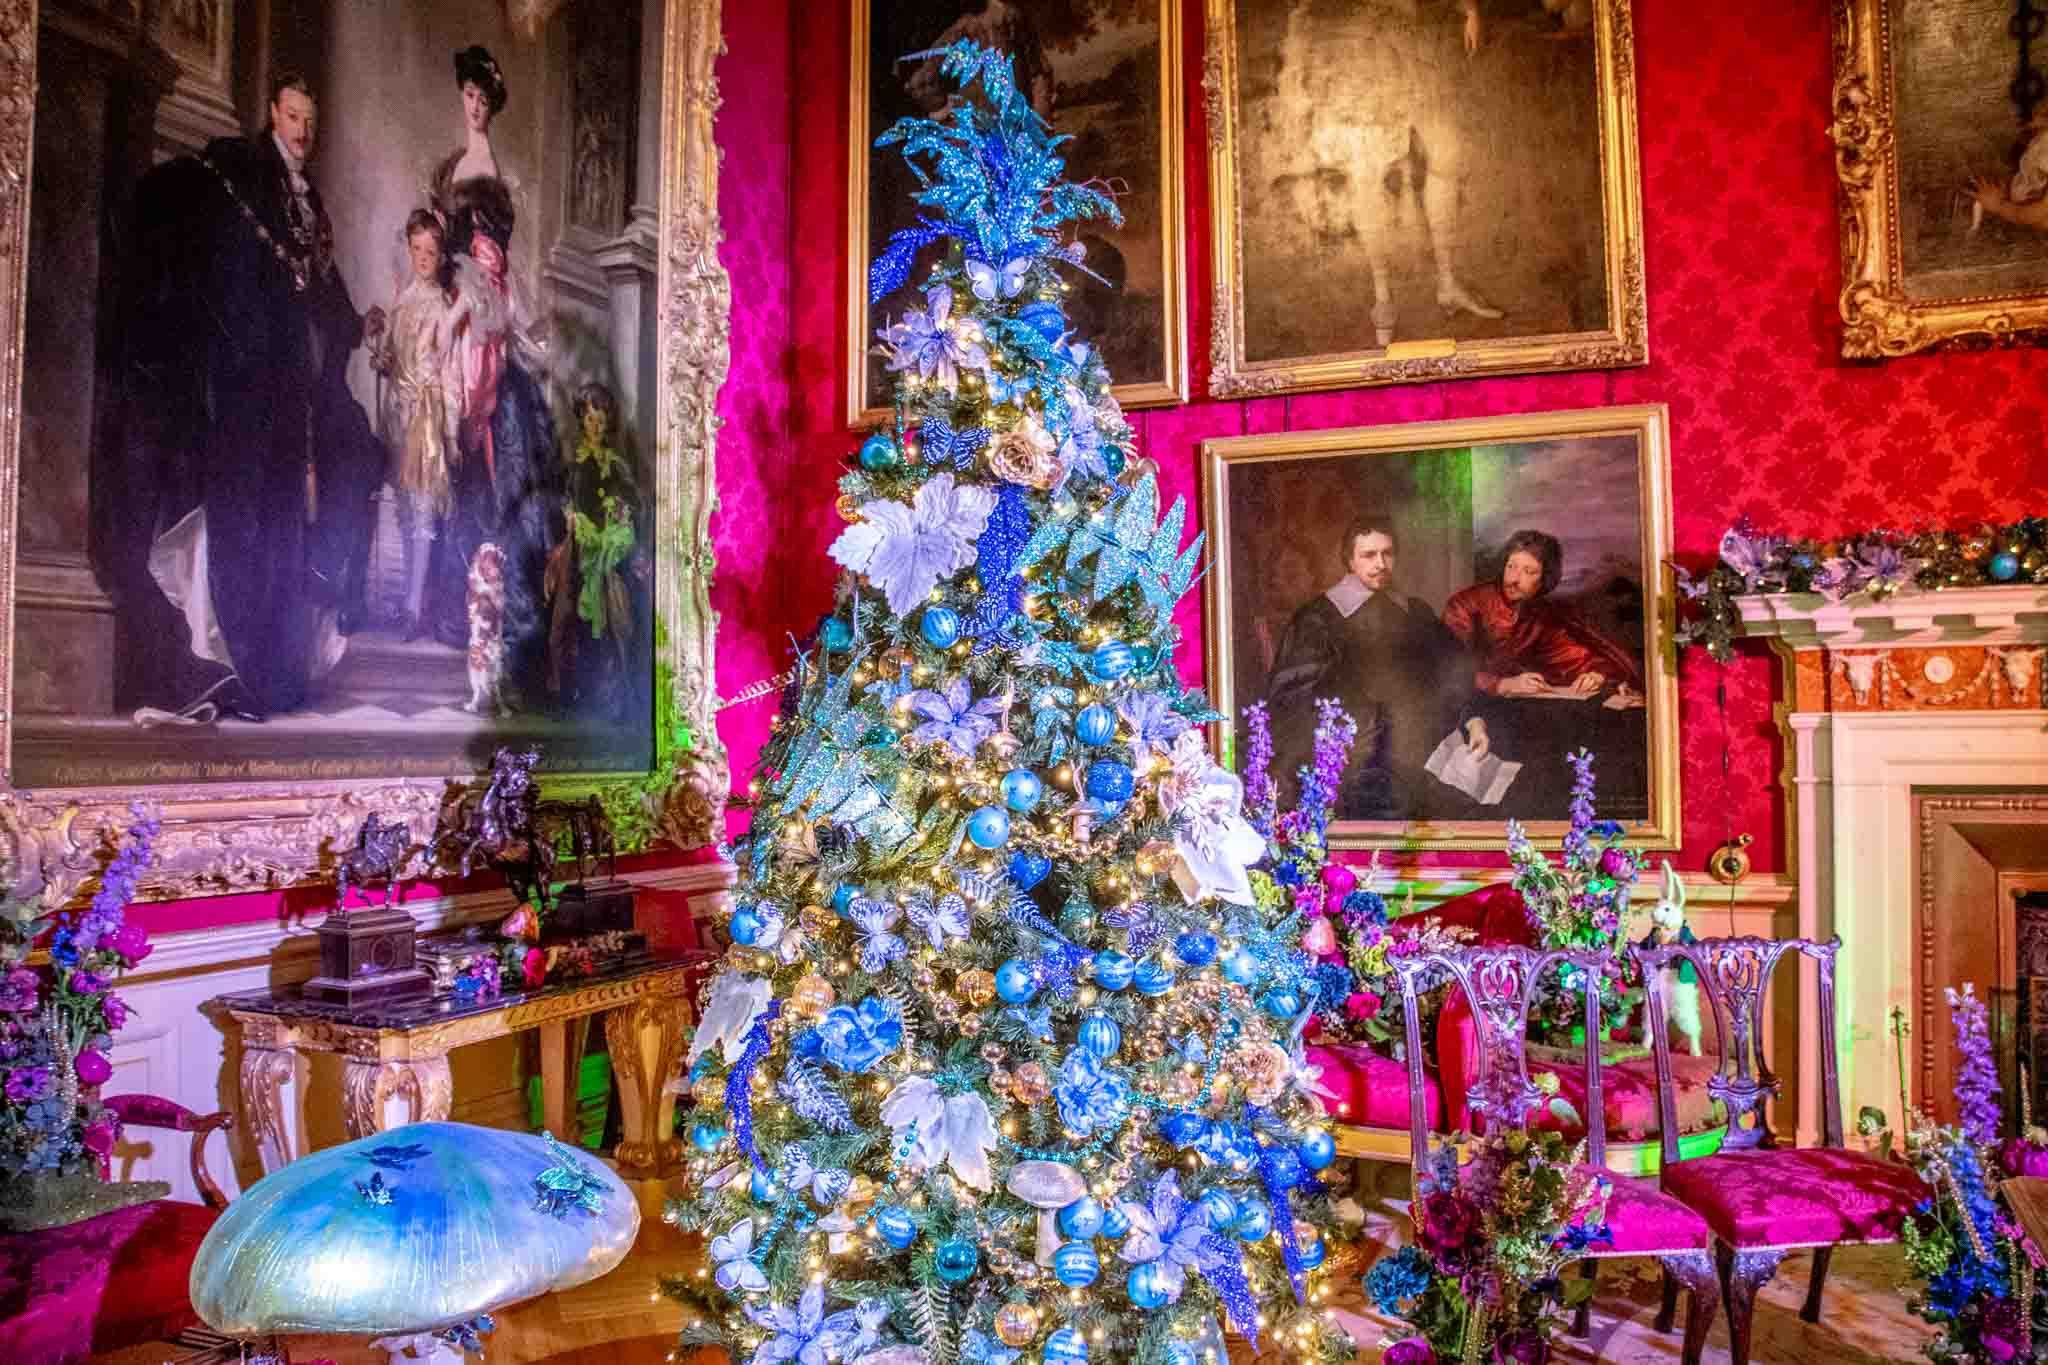 Decorated Christmas tree in a room filled with portraits